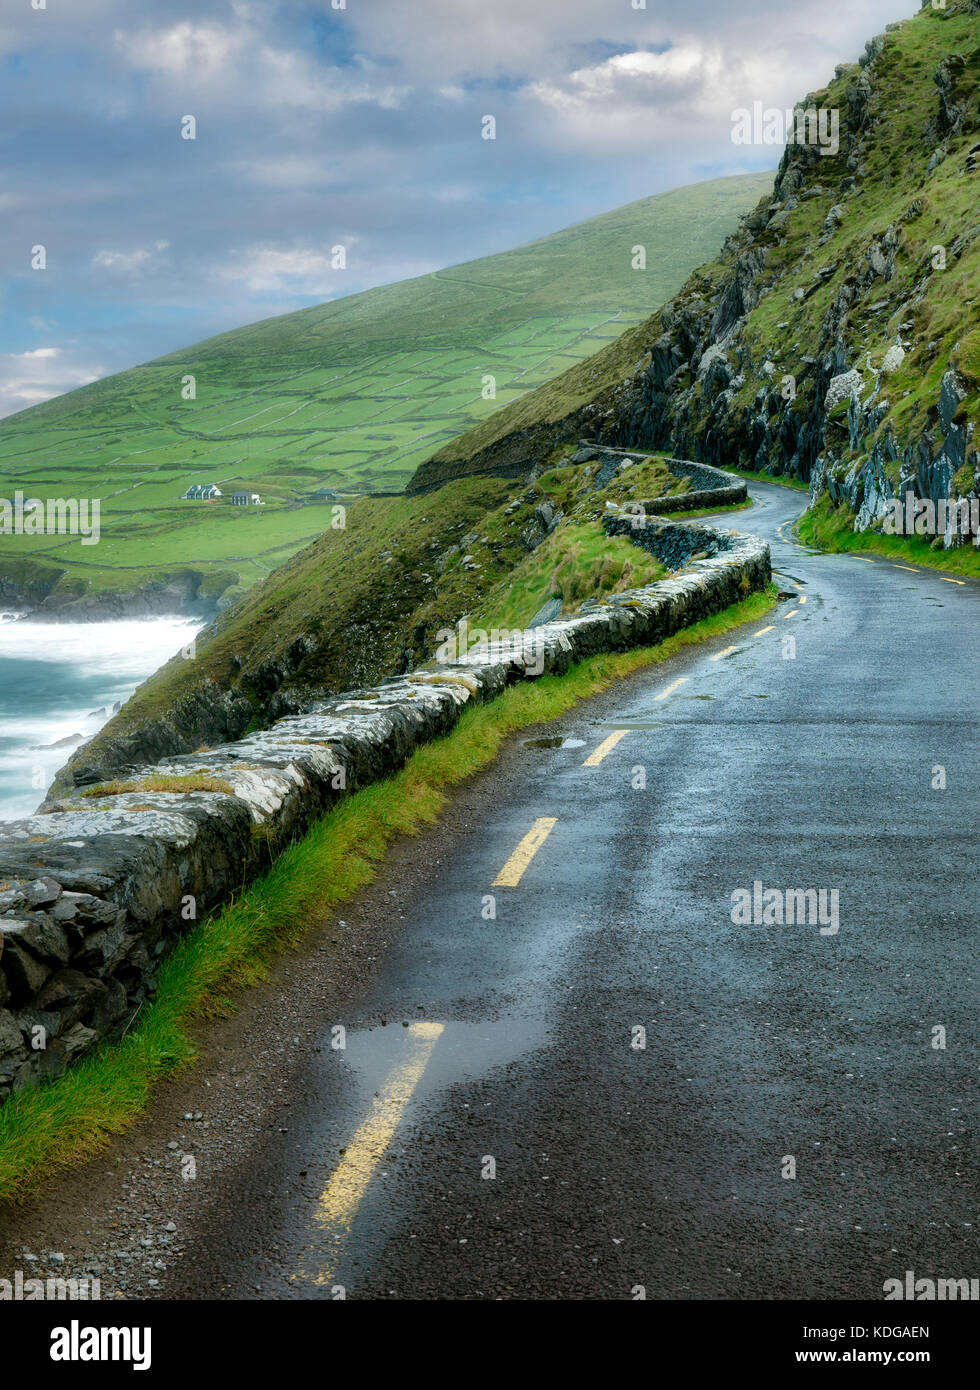 Slea head road. Le comté de Kerry, Irlande Photo Stock